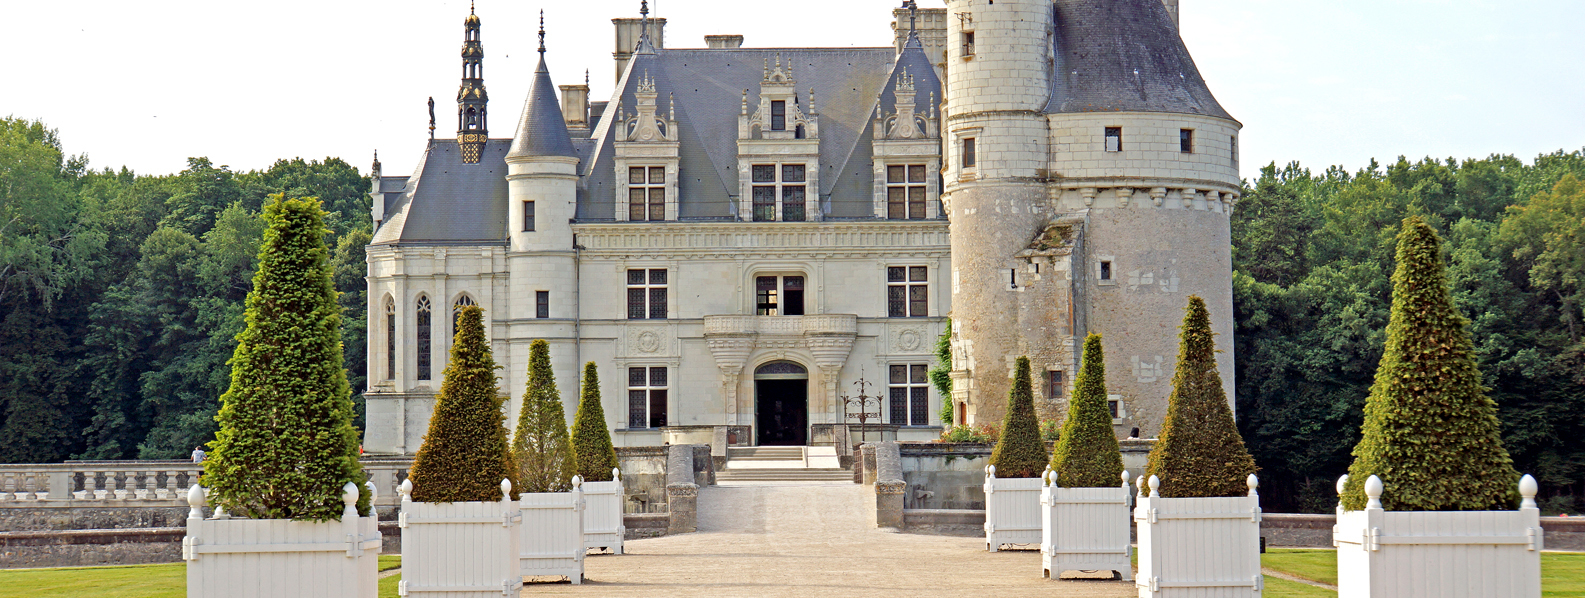 Chateau Cenonceau in Loire